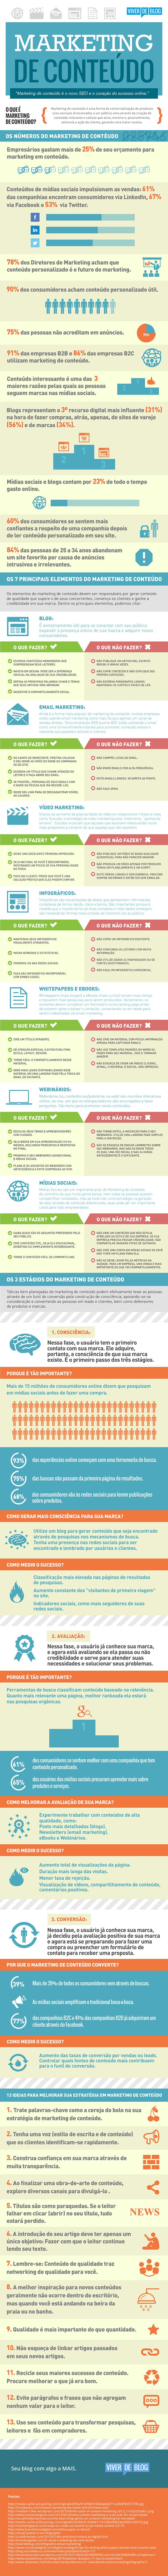 Infográfico Marketing de Conteúdo do Viver de Blog